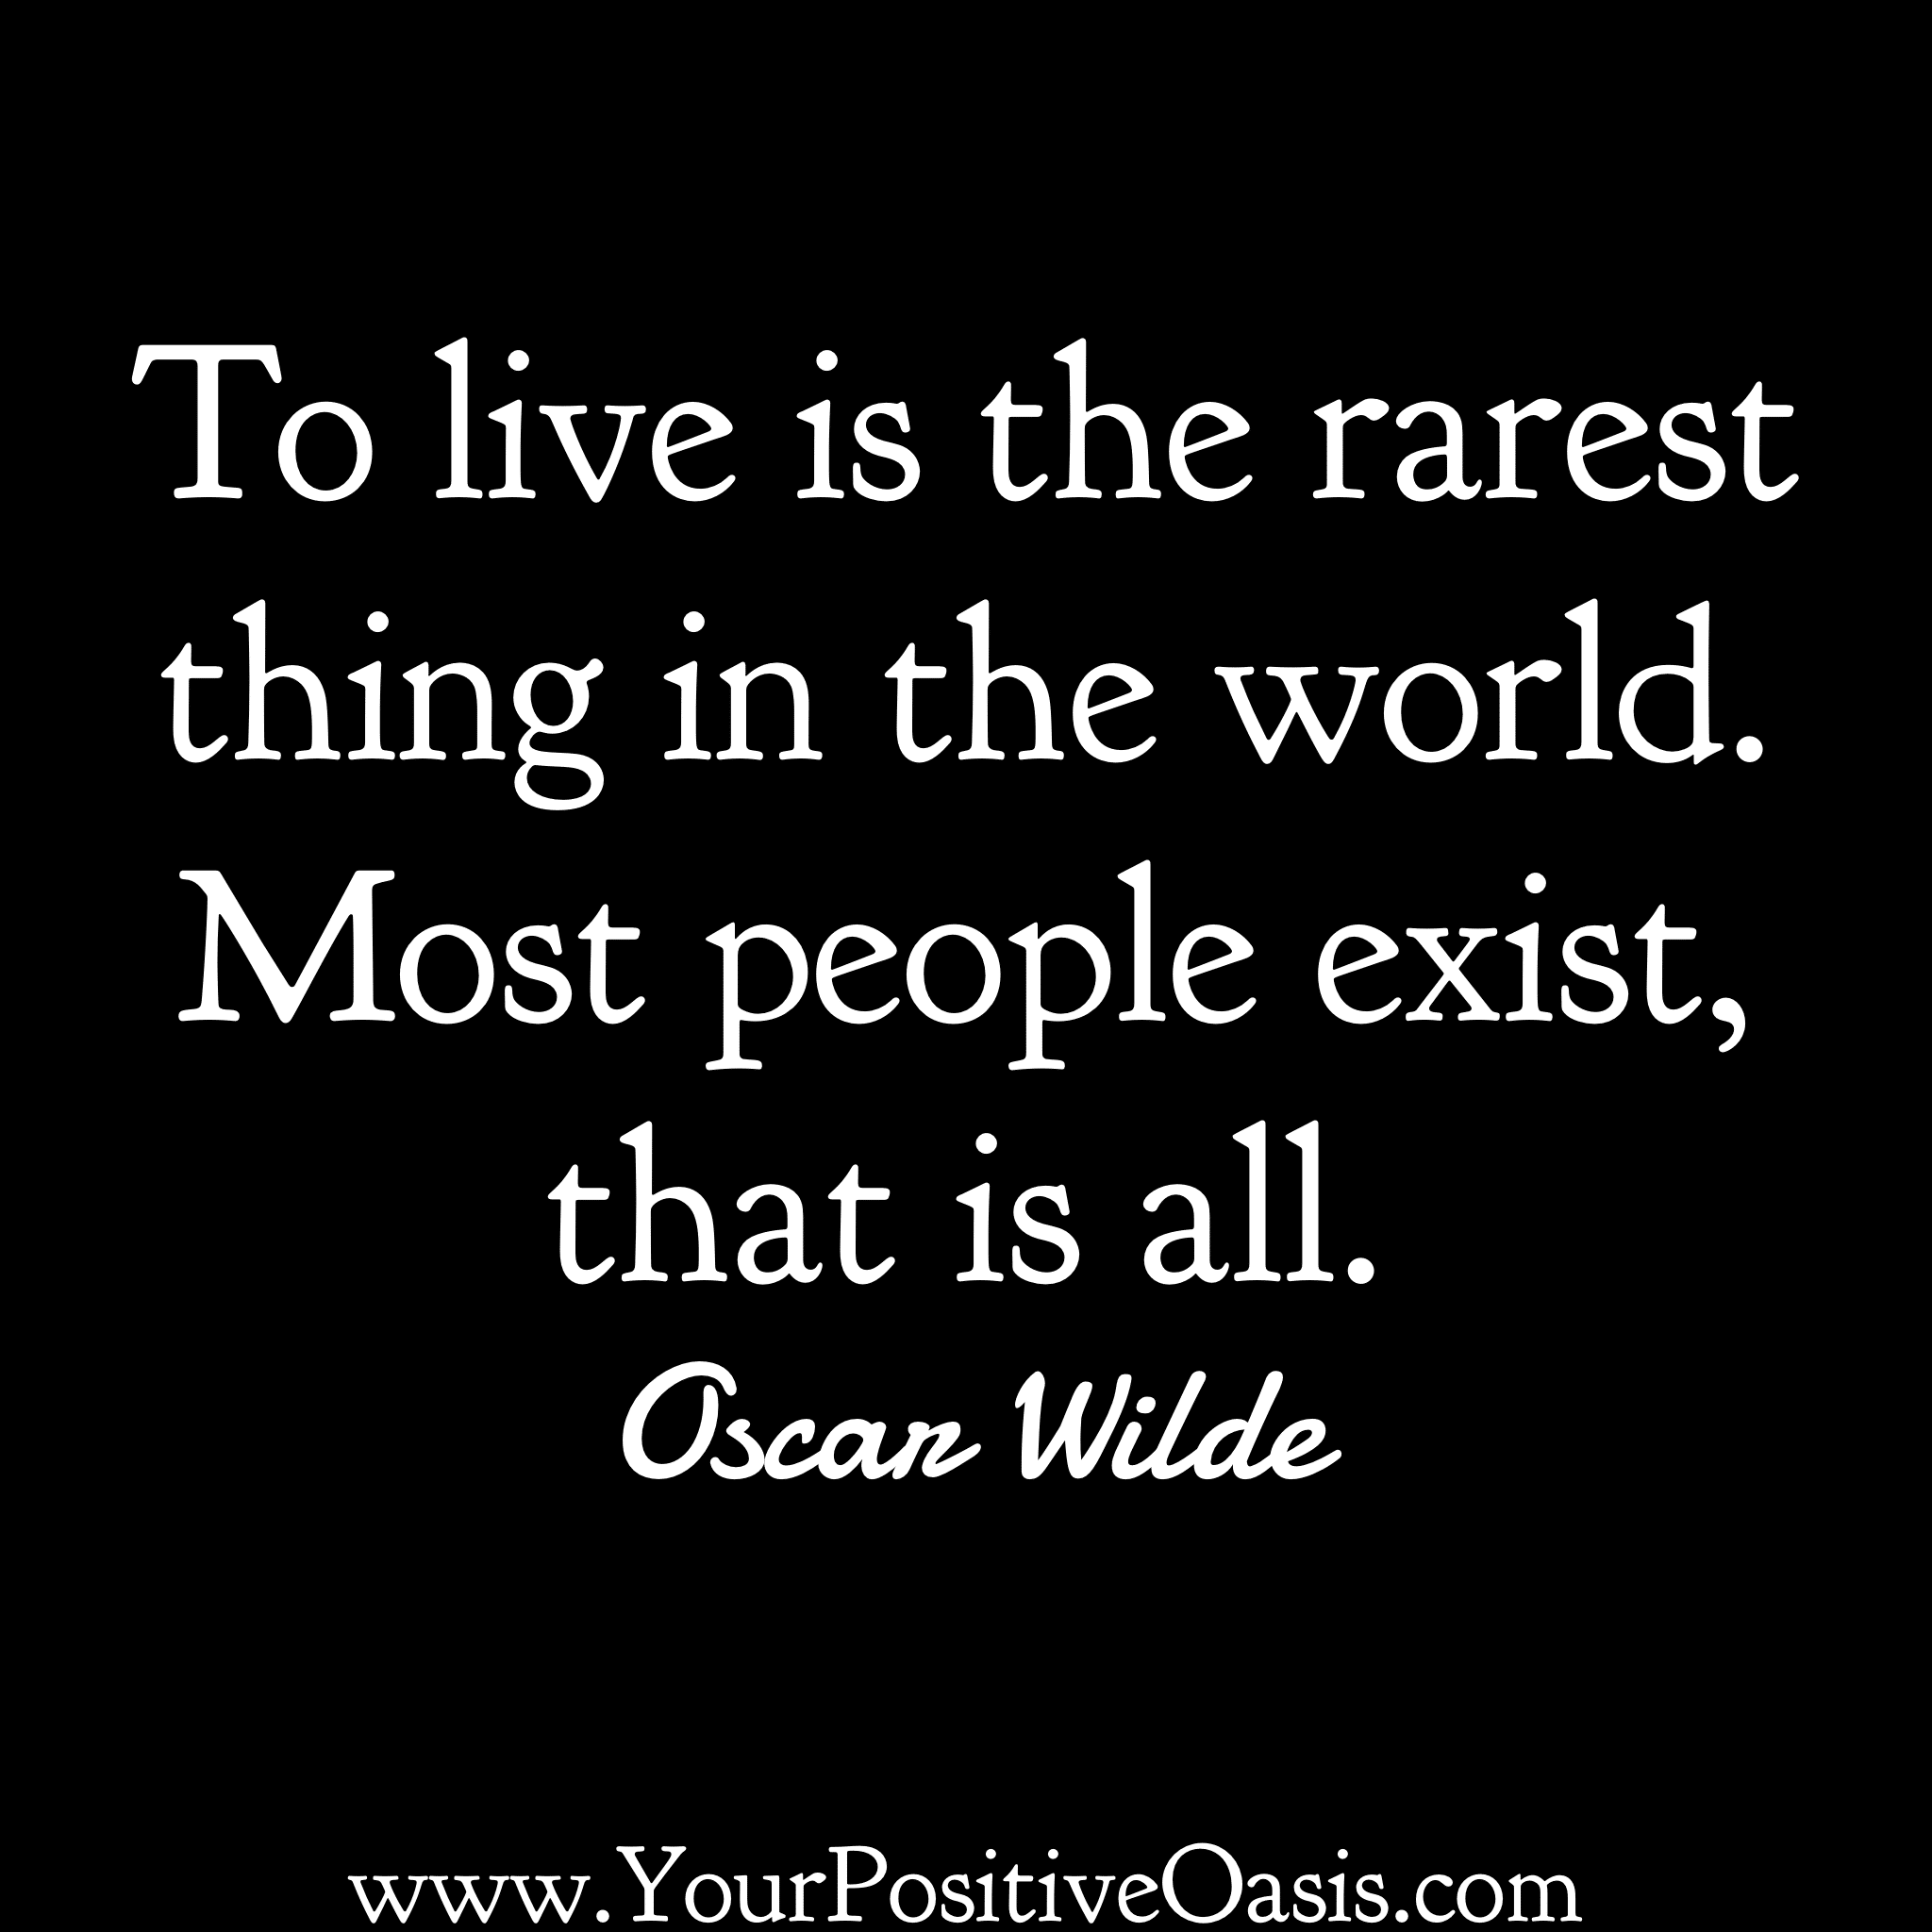 20 Oscar Wilde Quotes That Will Make You Smile